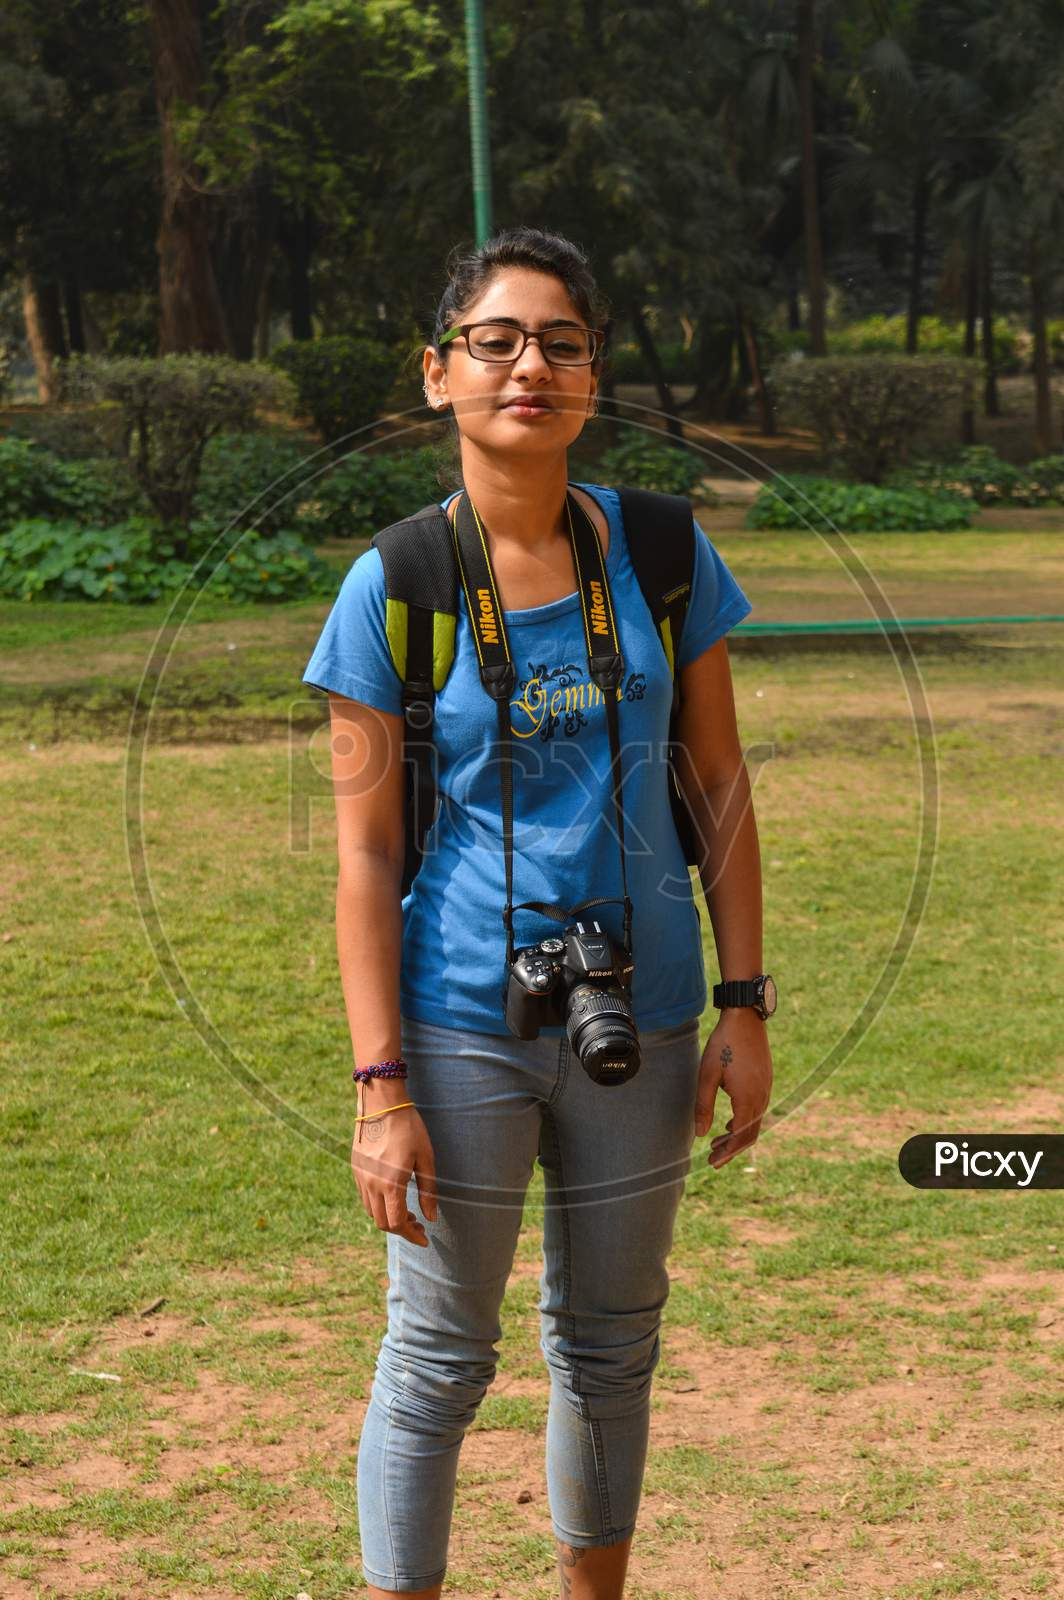 A Portrait Of Student Of Photography At Lodhi Garden Park With Nikon Camera.